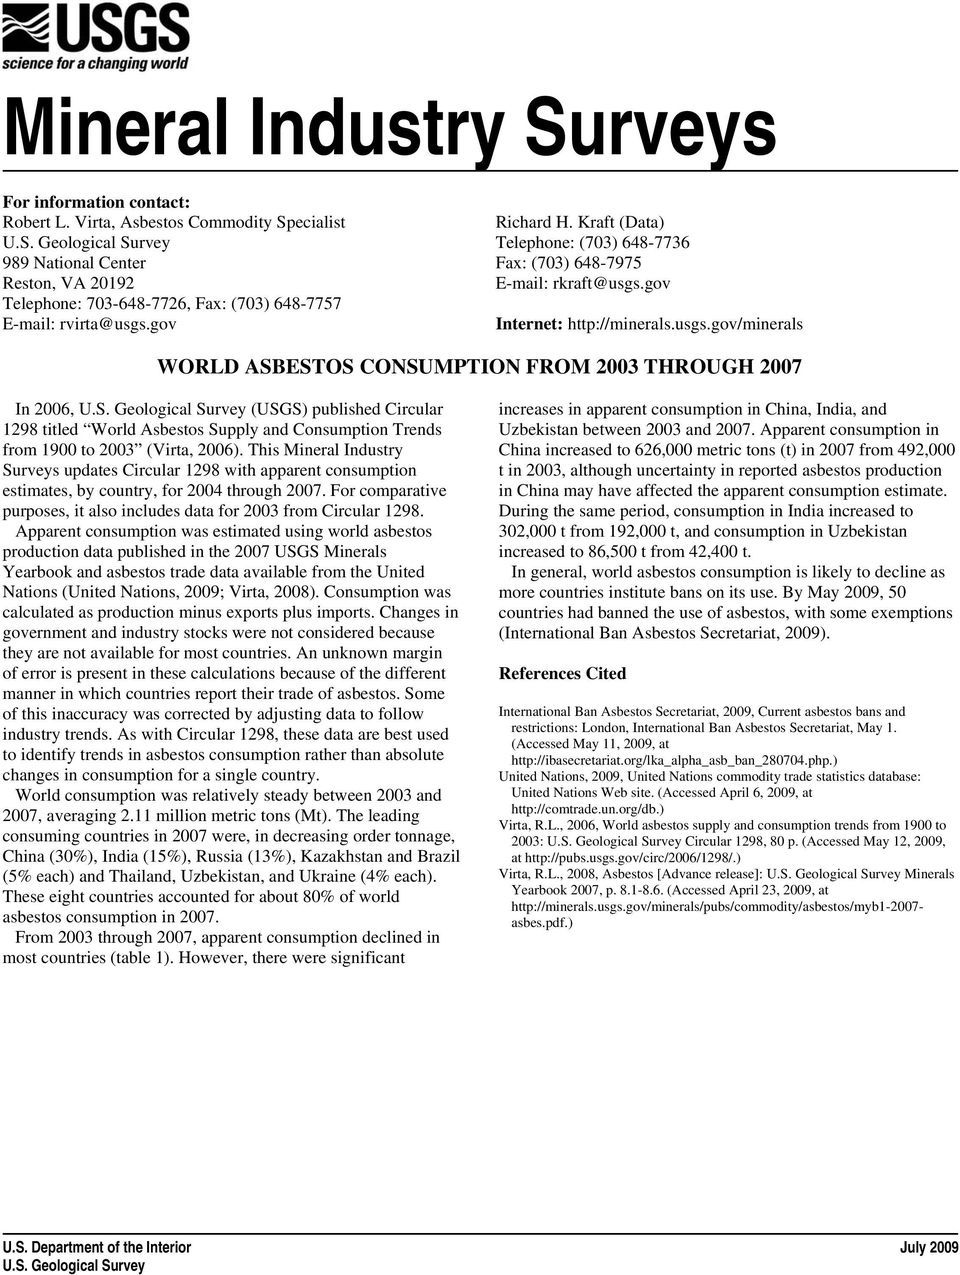 S. Geological Survey (USGS) published Circular 1298 titled World Asbestos Supply and Consumption Trends from 1900 to 2003 (Virta, 2006).